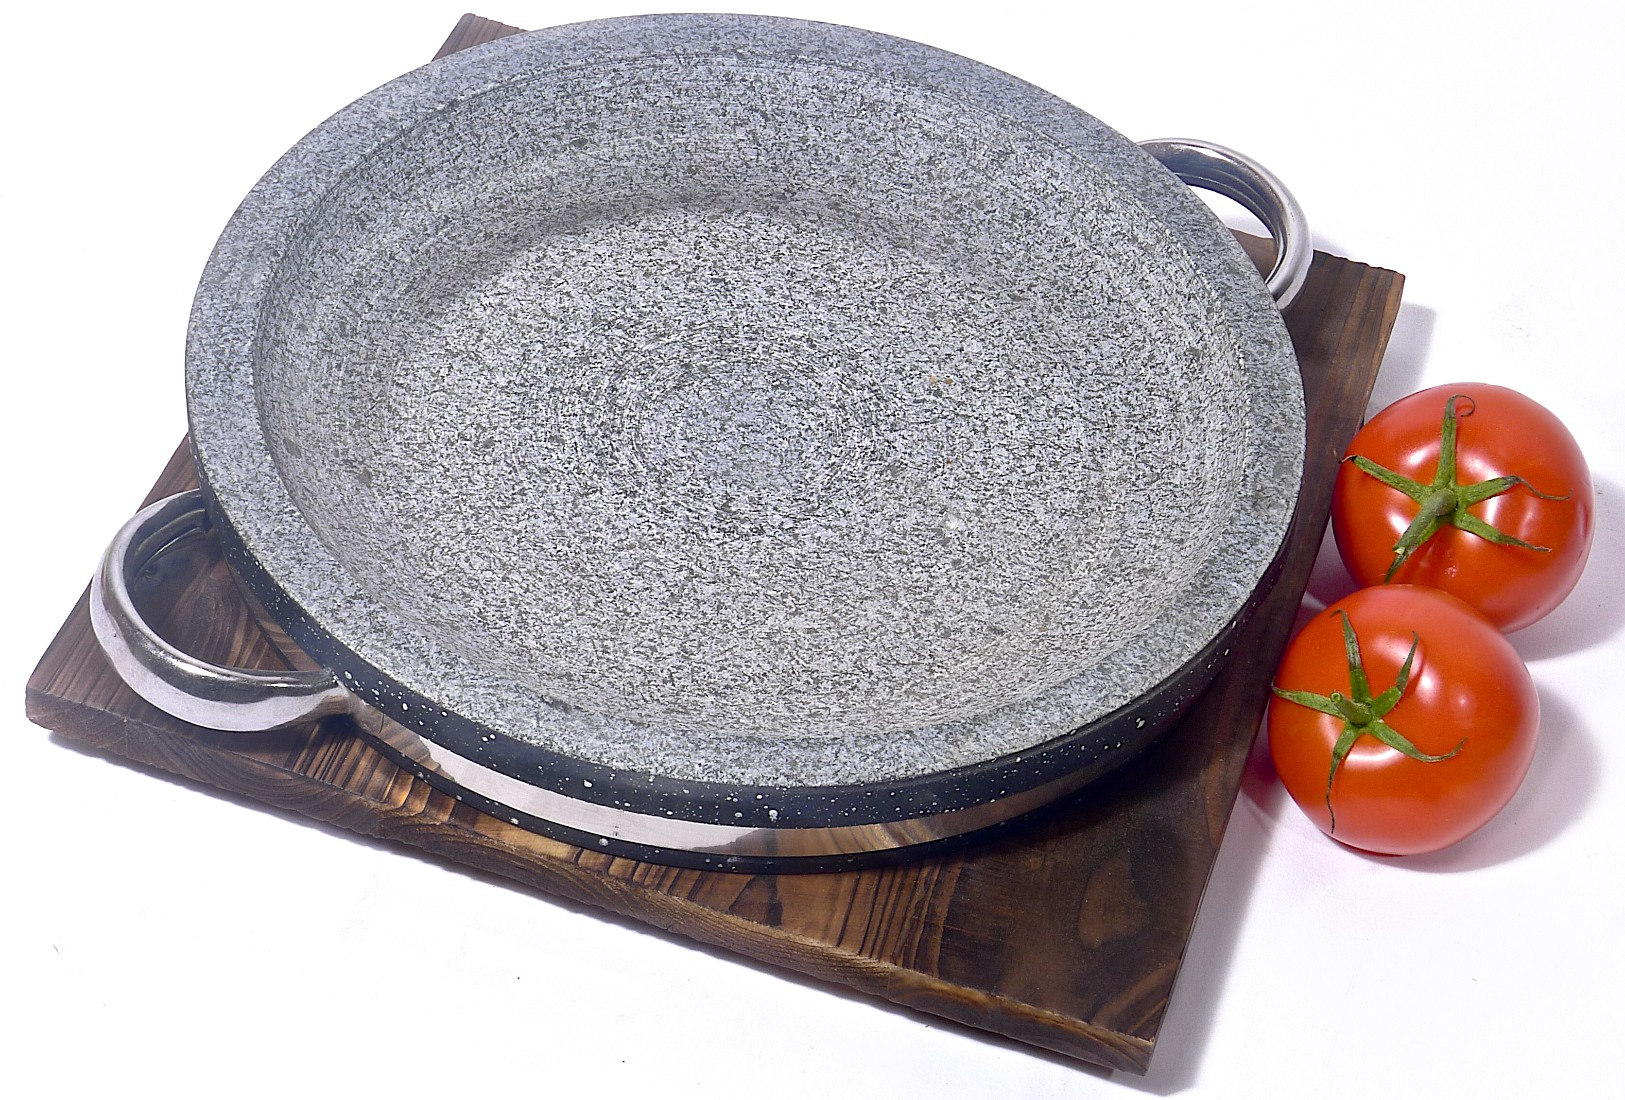 Image of Spiceberry Home Granite Stone Grilling Pan - 11-Inch